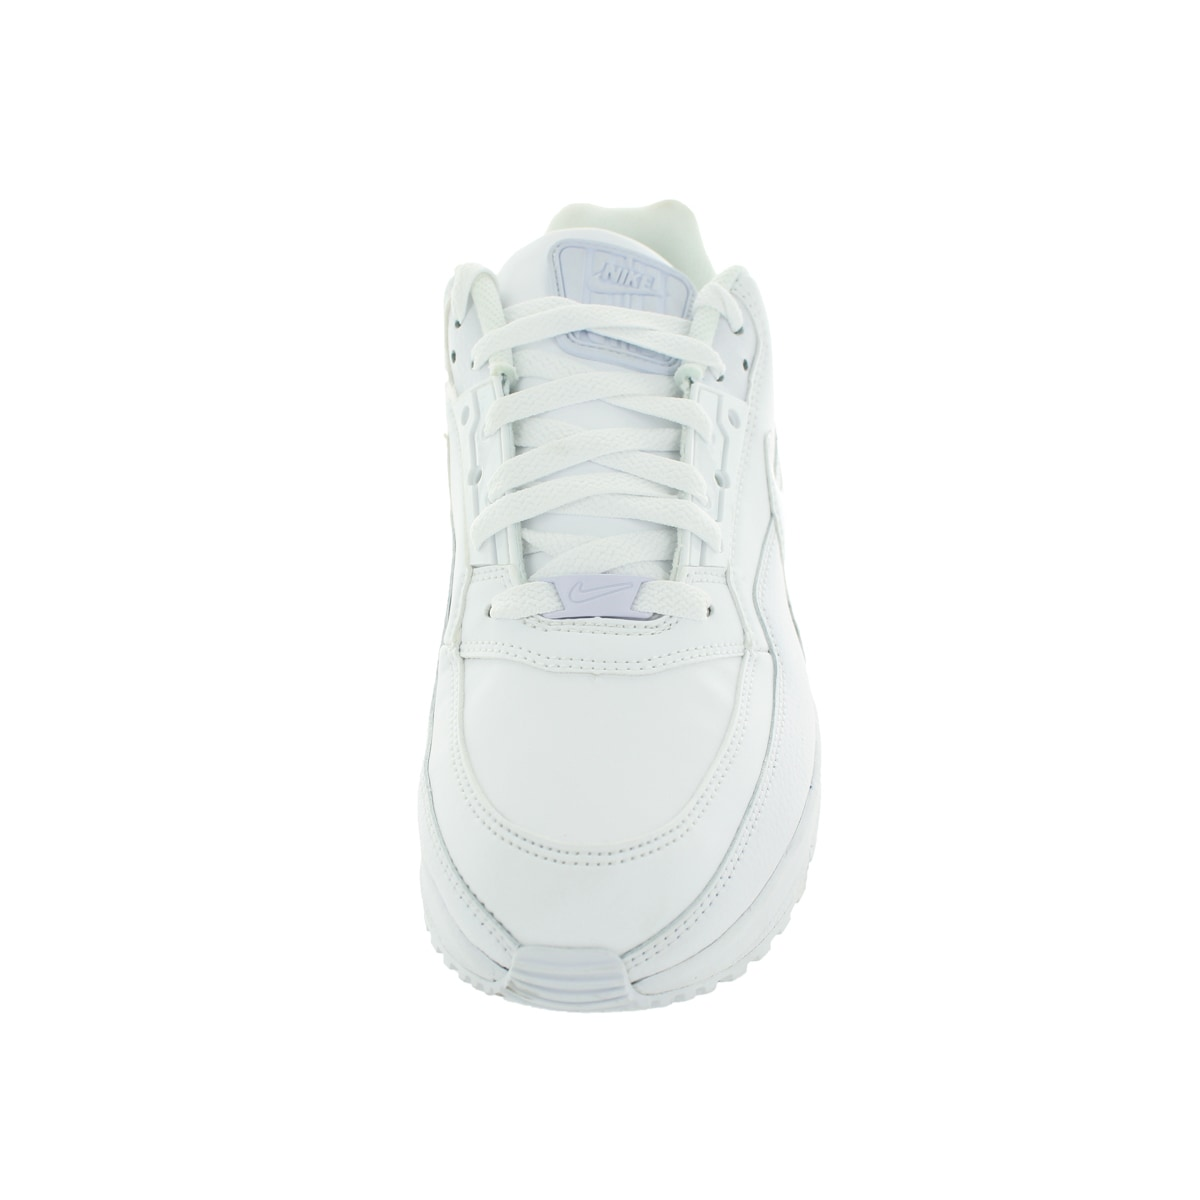 5183f0f844fa Shop Nike Men s Air Max Ltd 3 White White White Running Shoe - Free  Shipping Today - Overstock - 12330945